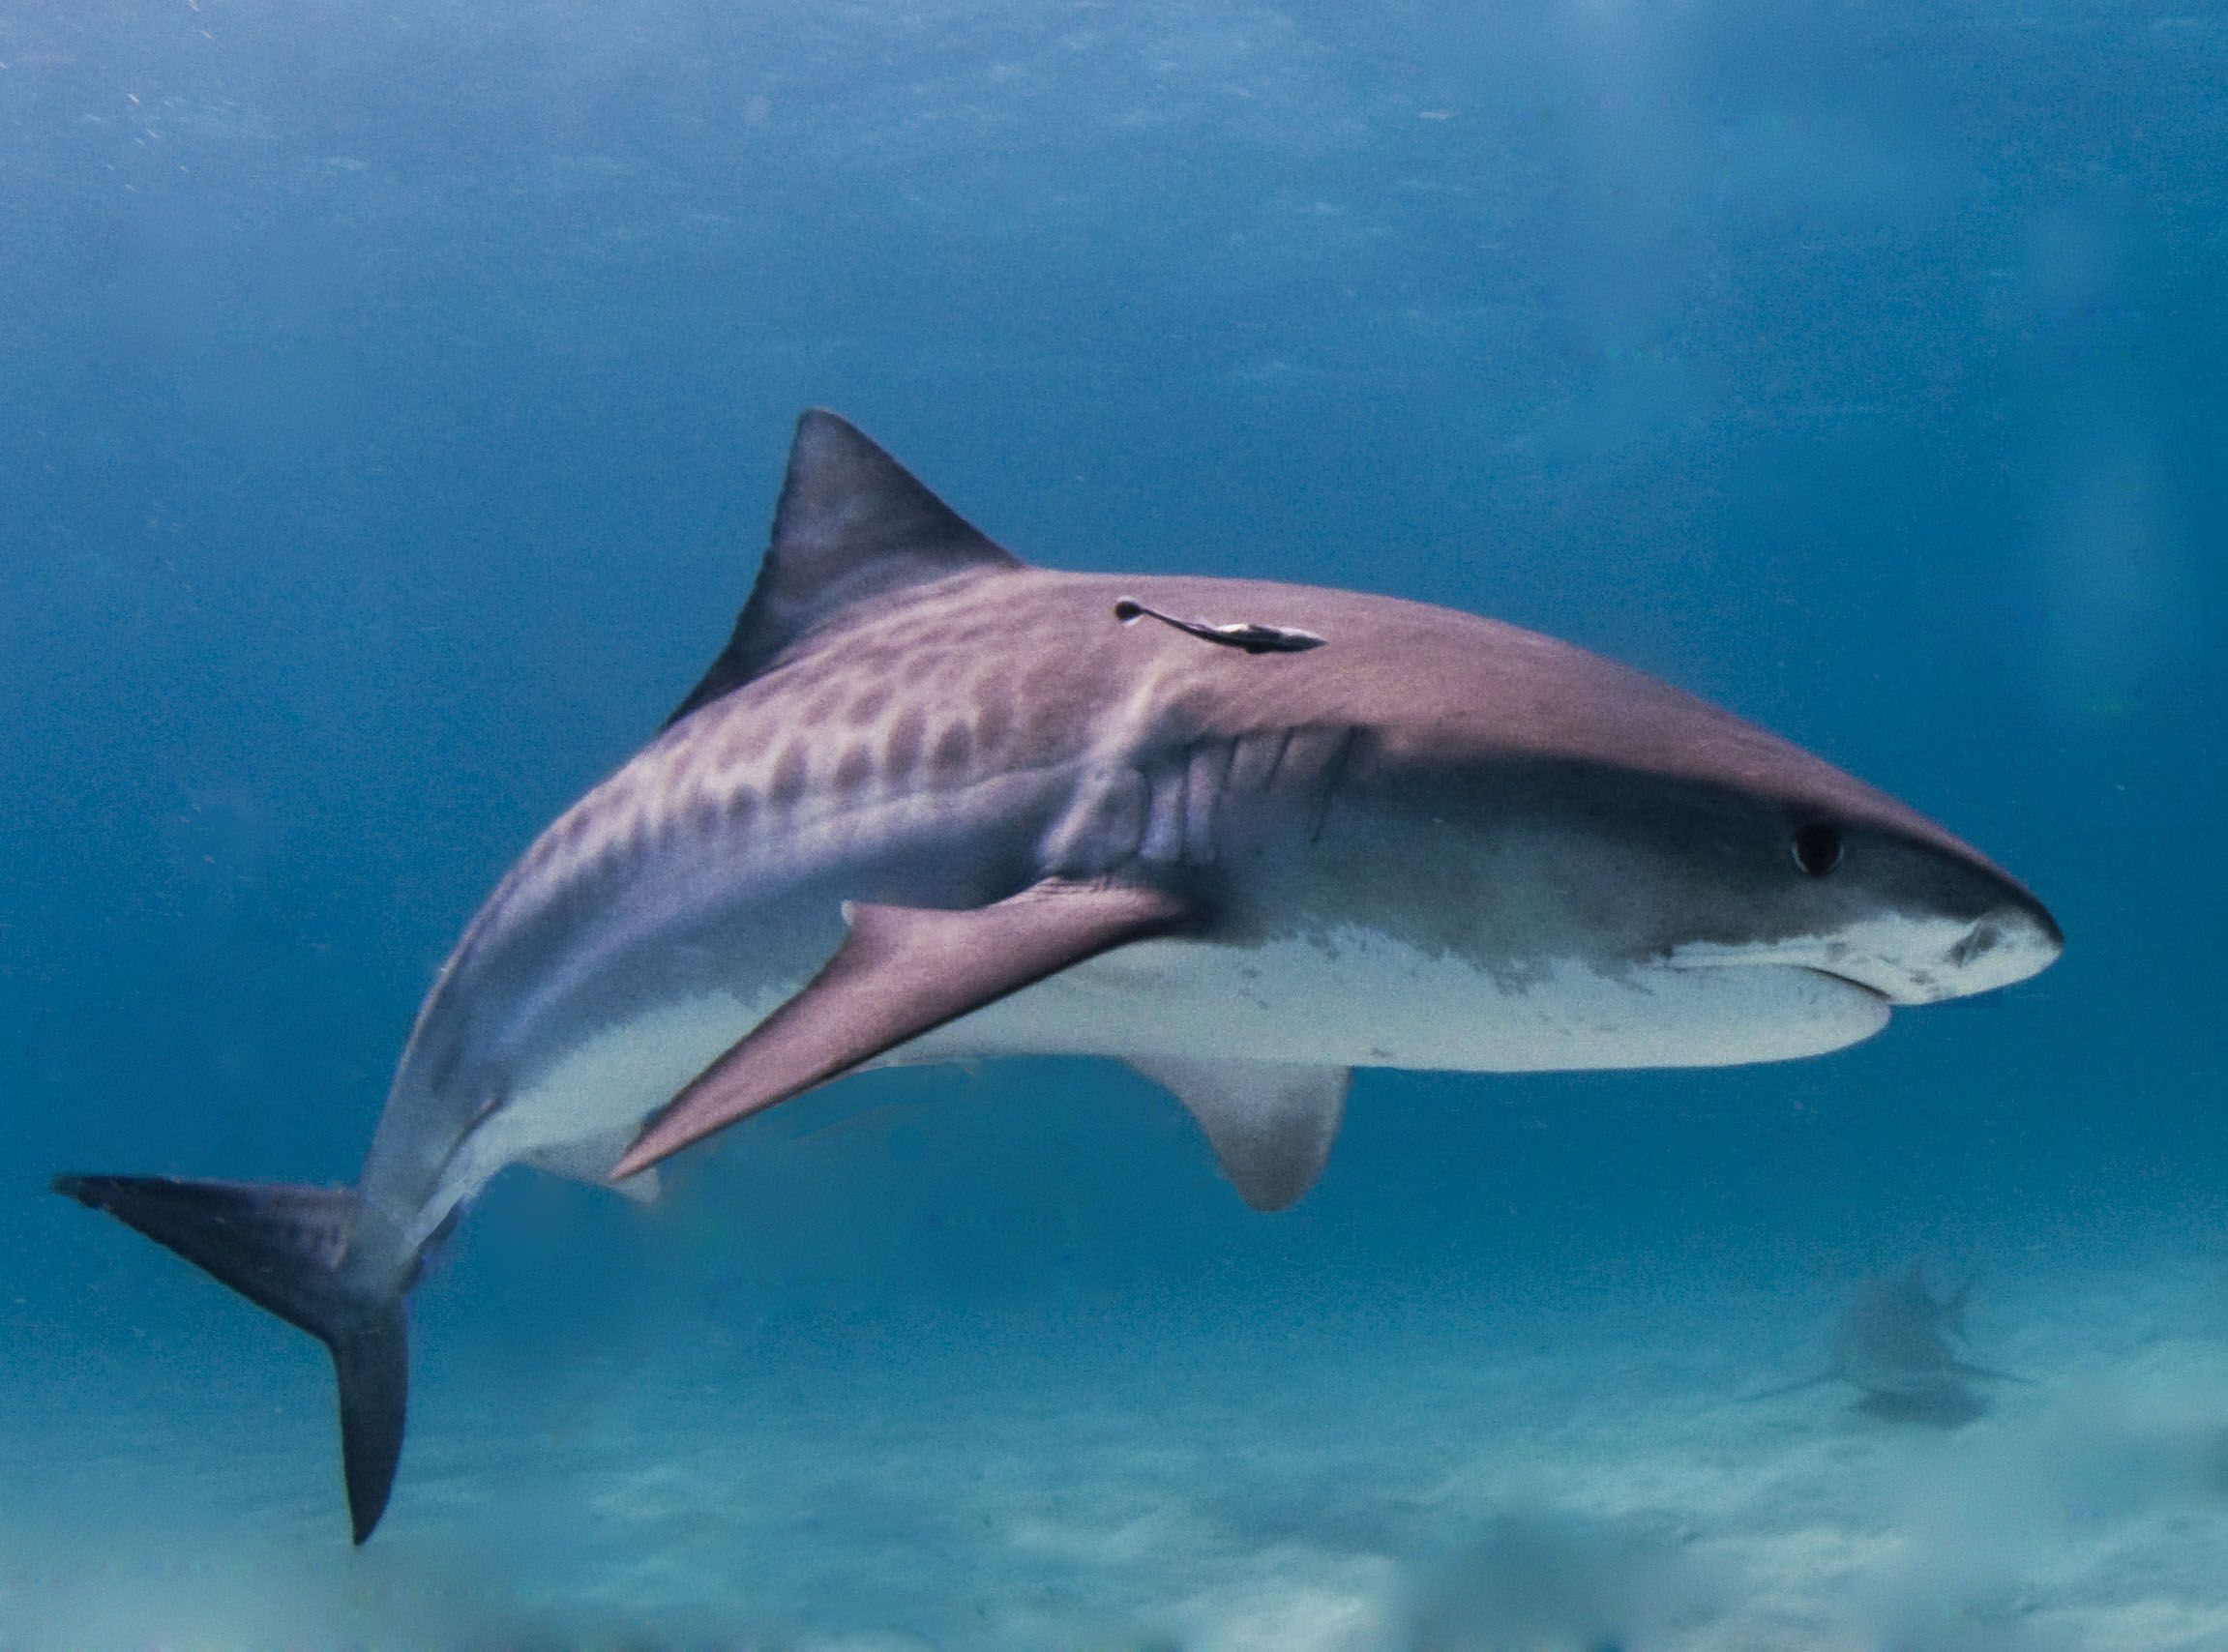 Fish tale hawaiian man rips out sharks eye to survive attack tigershark altavistaventures Image collections